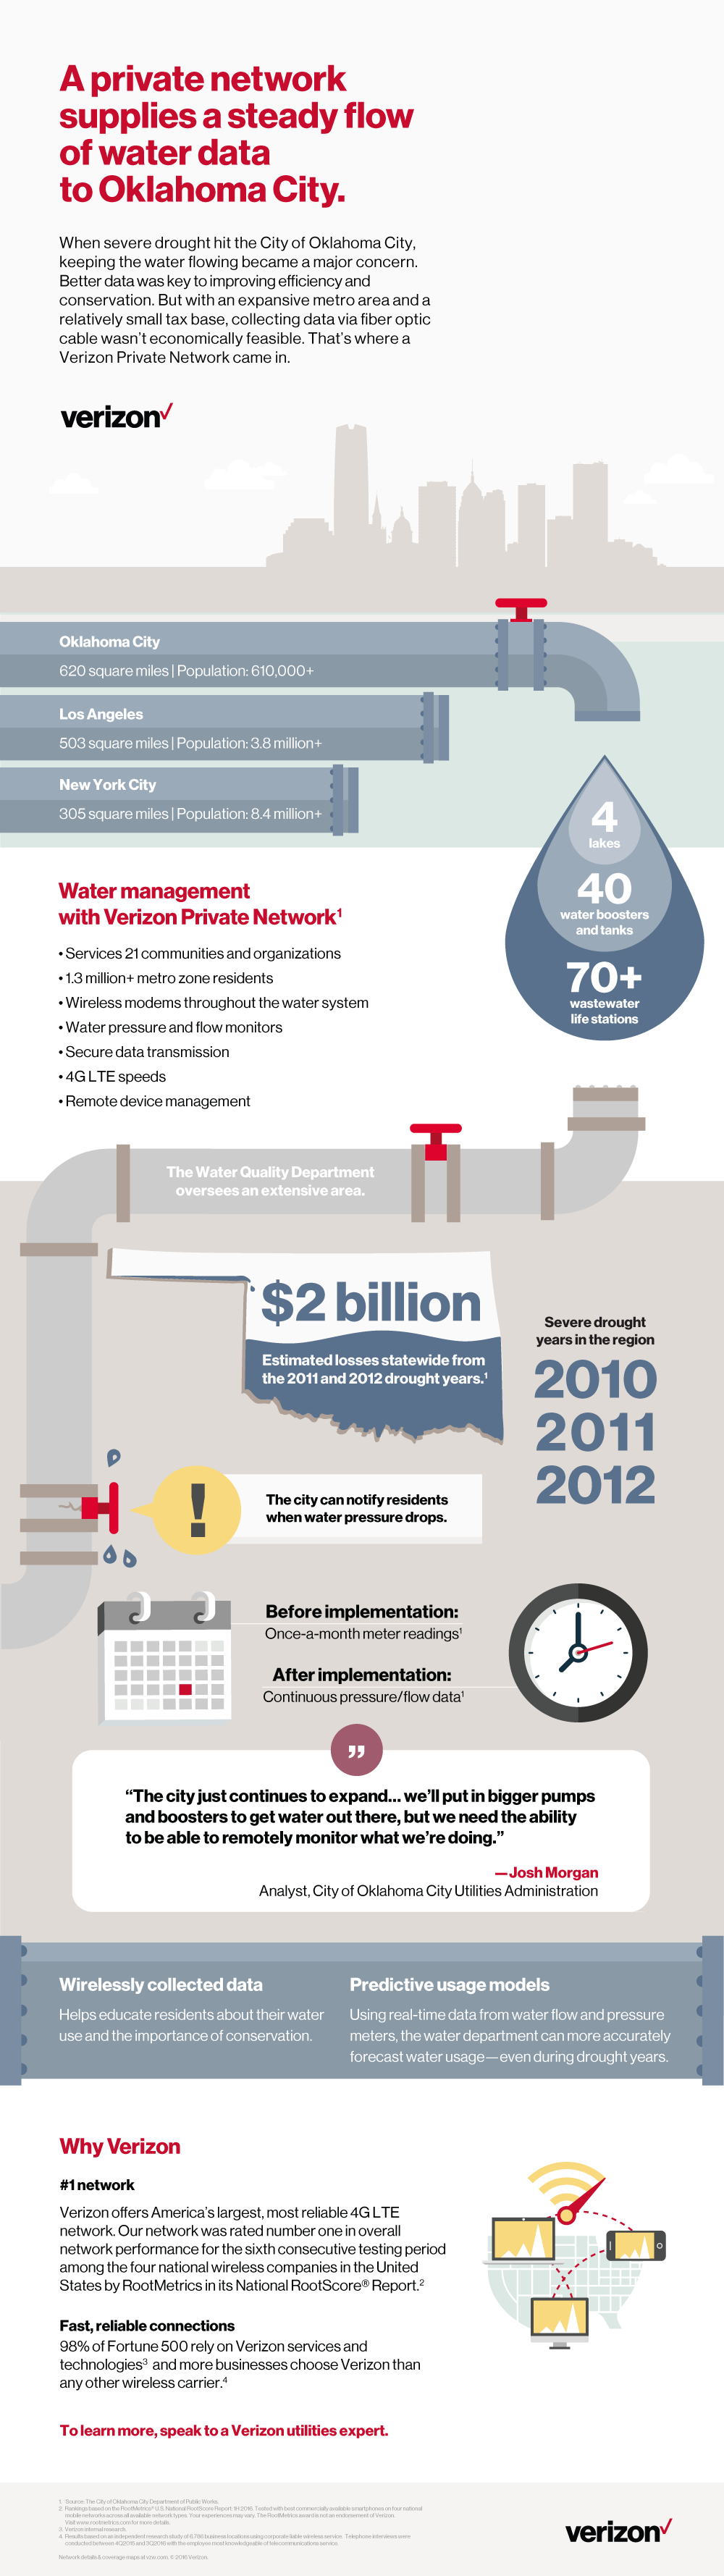 Verizon Virtual Private Network: OKC Water Management Case Study — Infographic